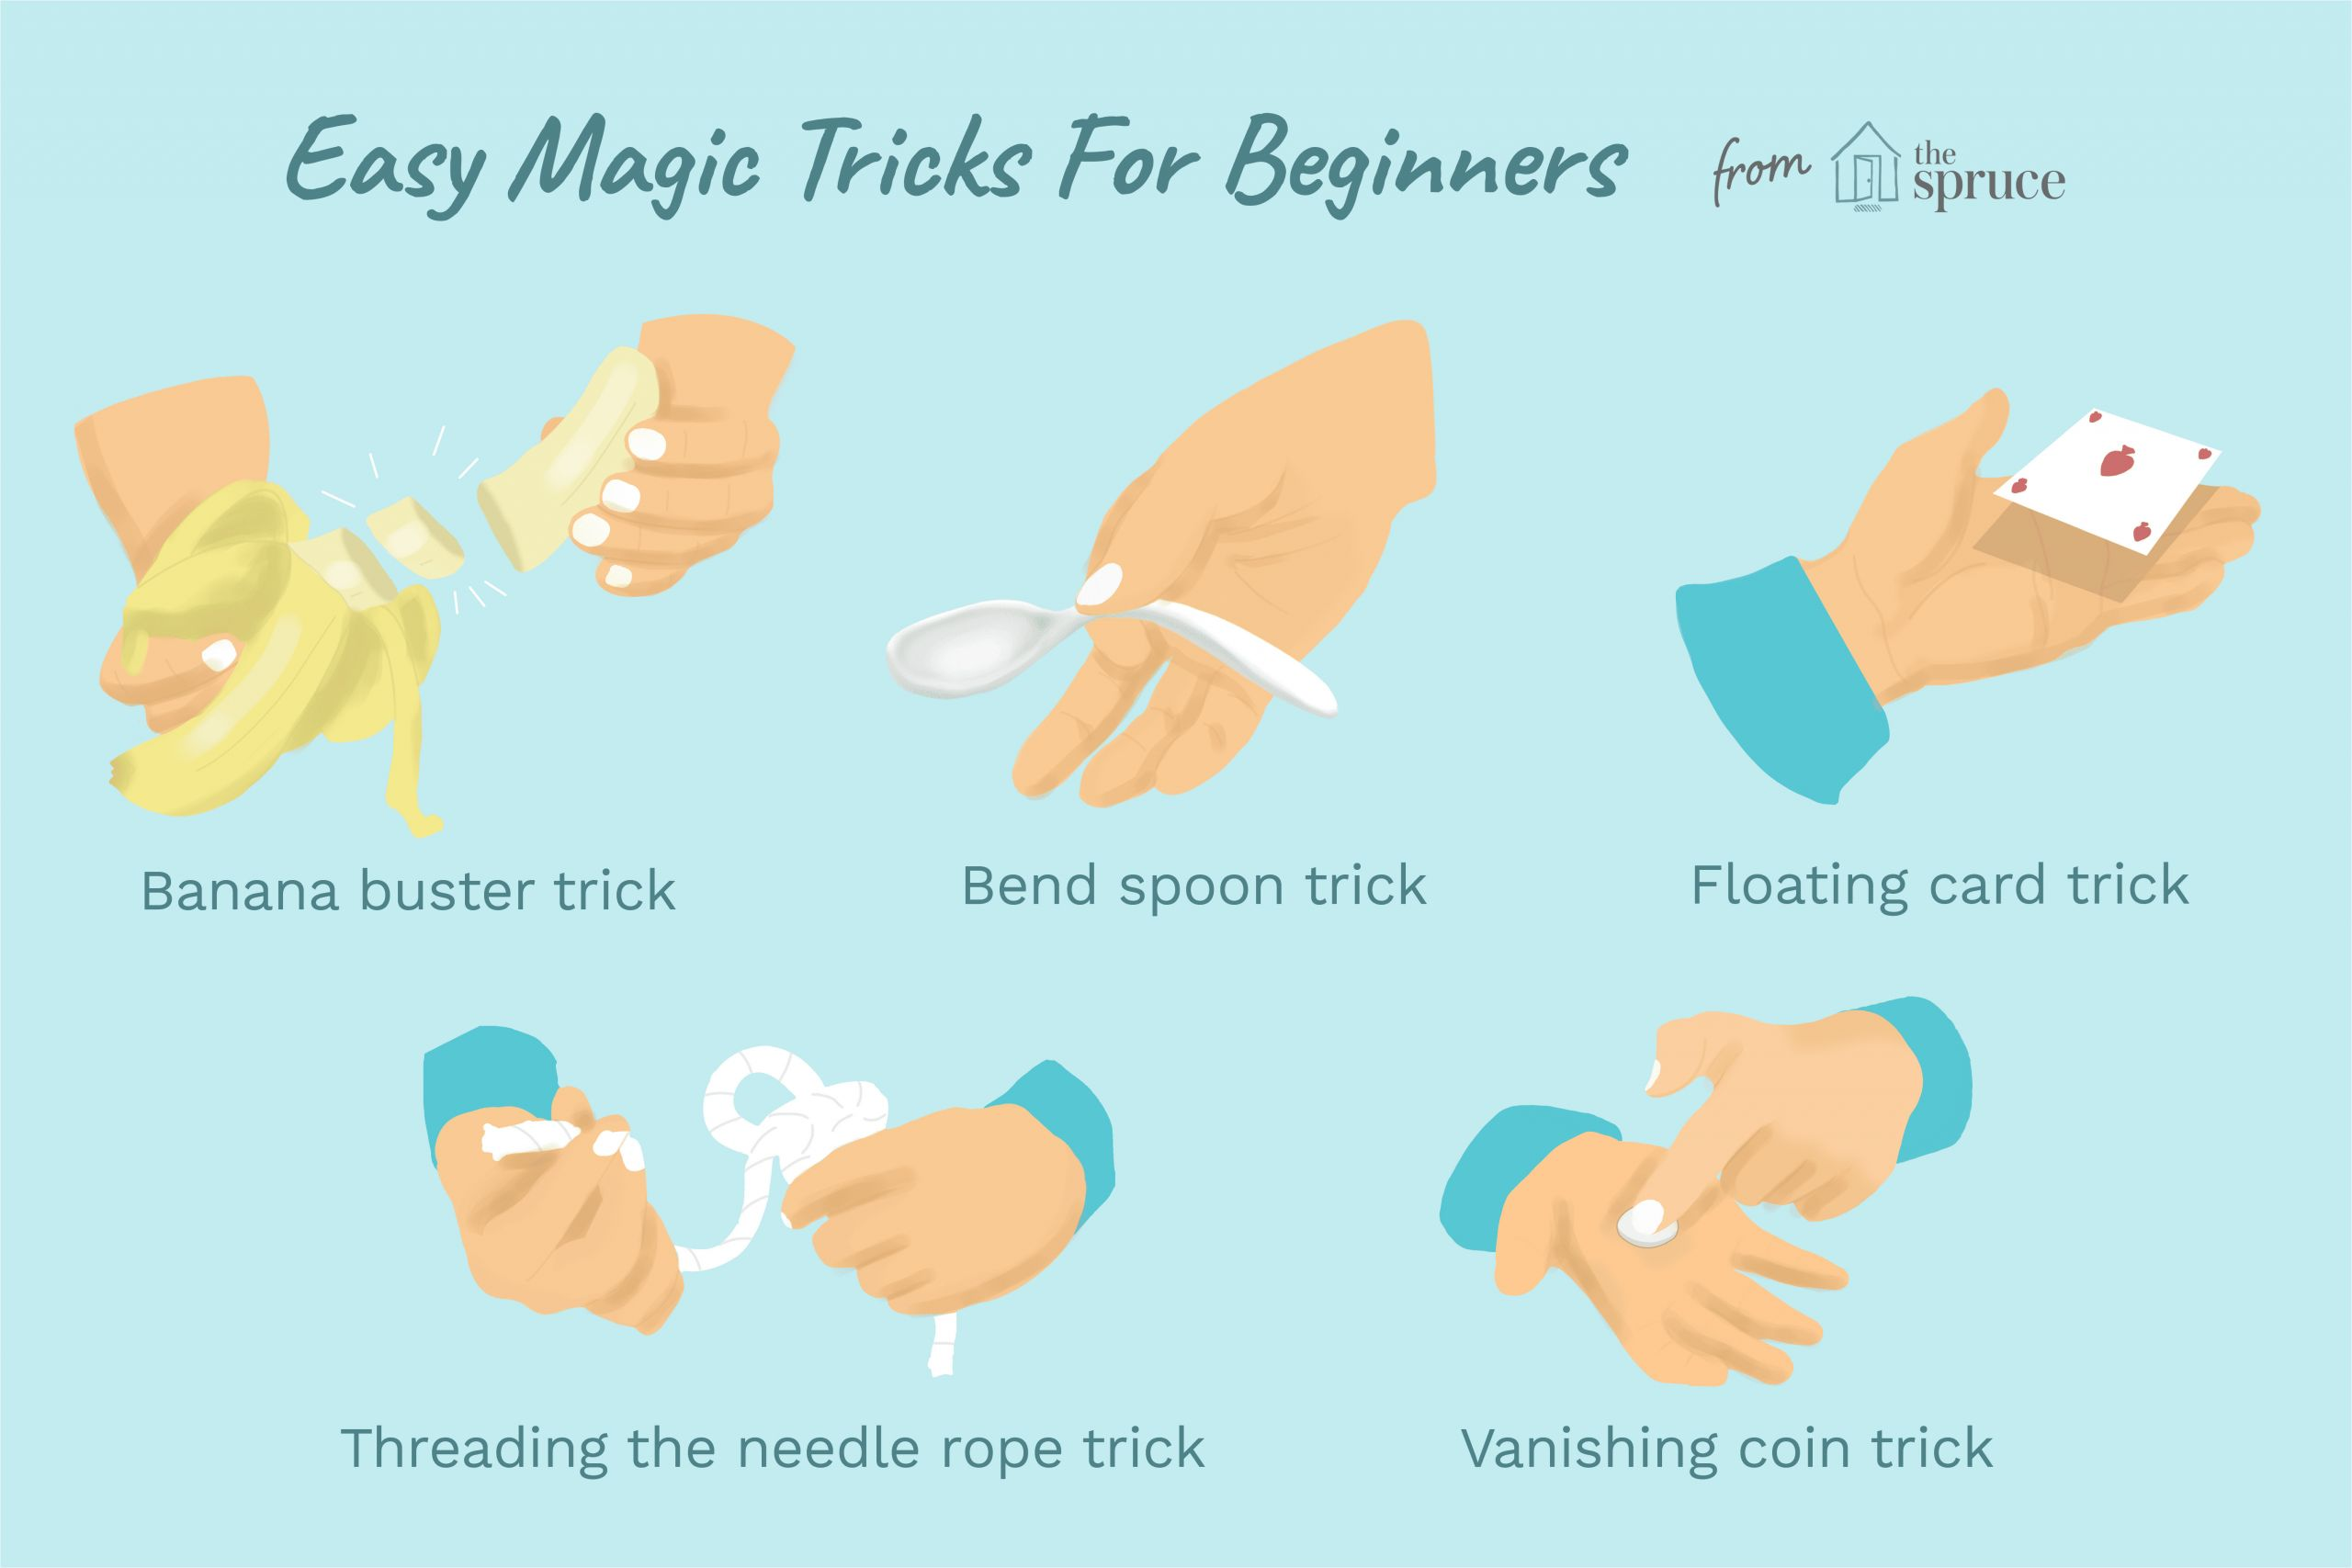 Easy Card Magic Tricks to Learn Easy Magic Tricks for Kids and Beginners